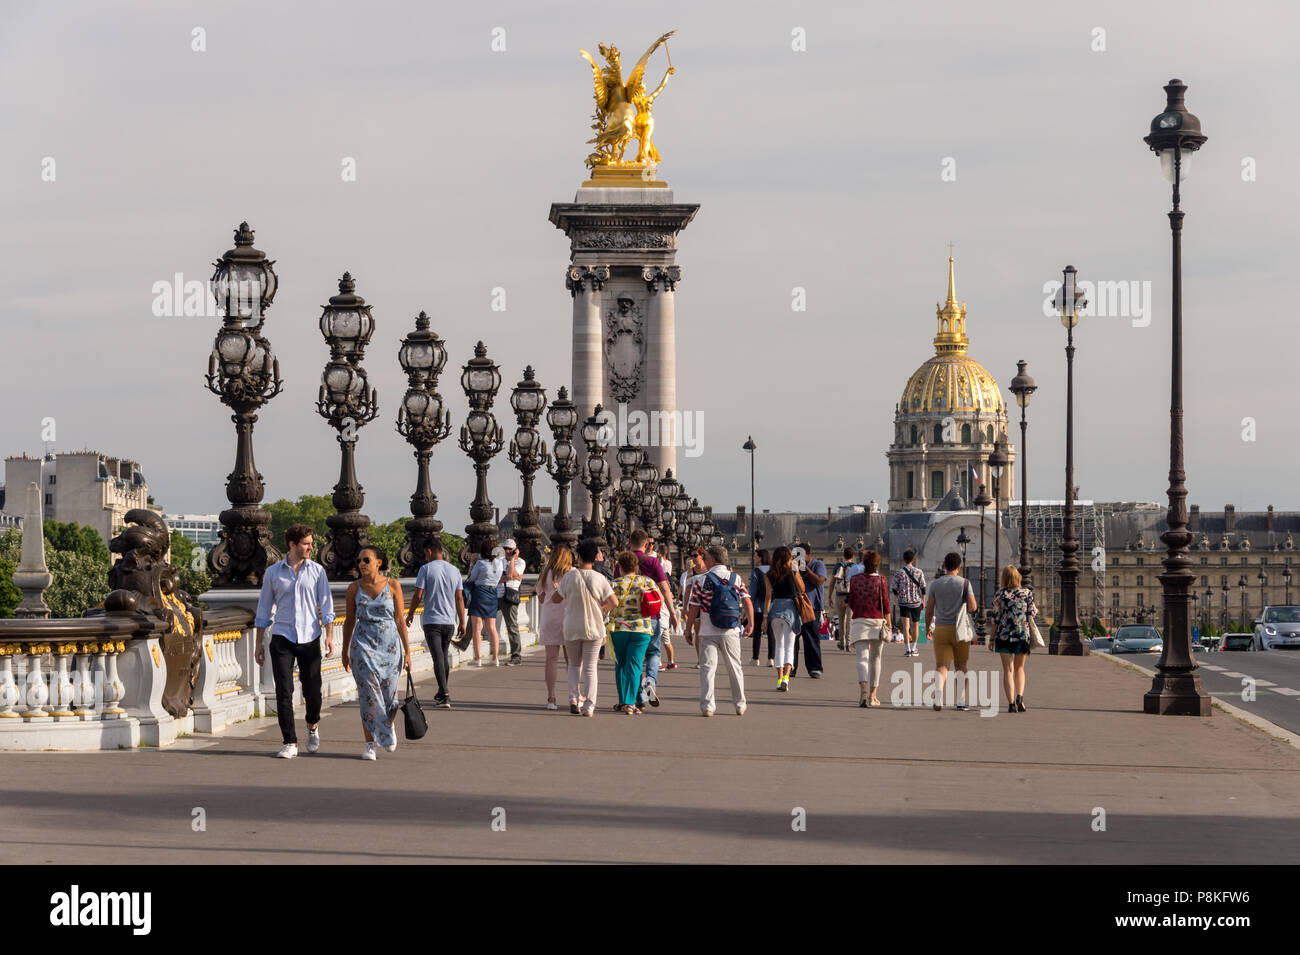 Paris, France - 24 June 2018: People walking on Alexandre III bridge and the dome of the Invalides in the bakcground. Stock Photo